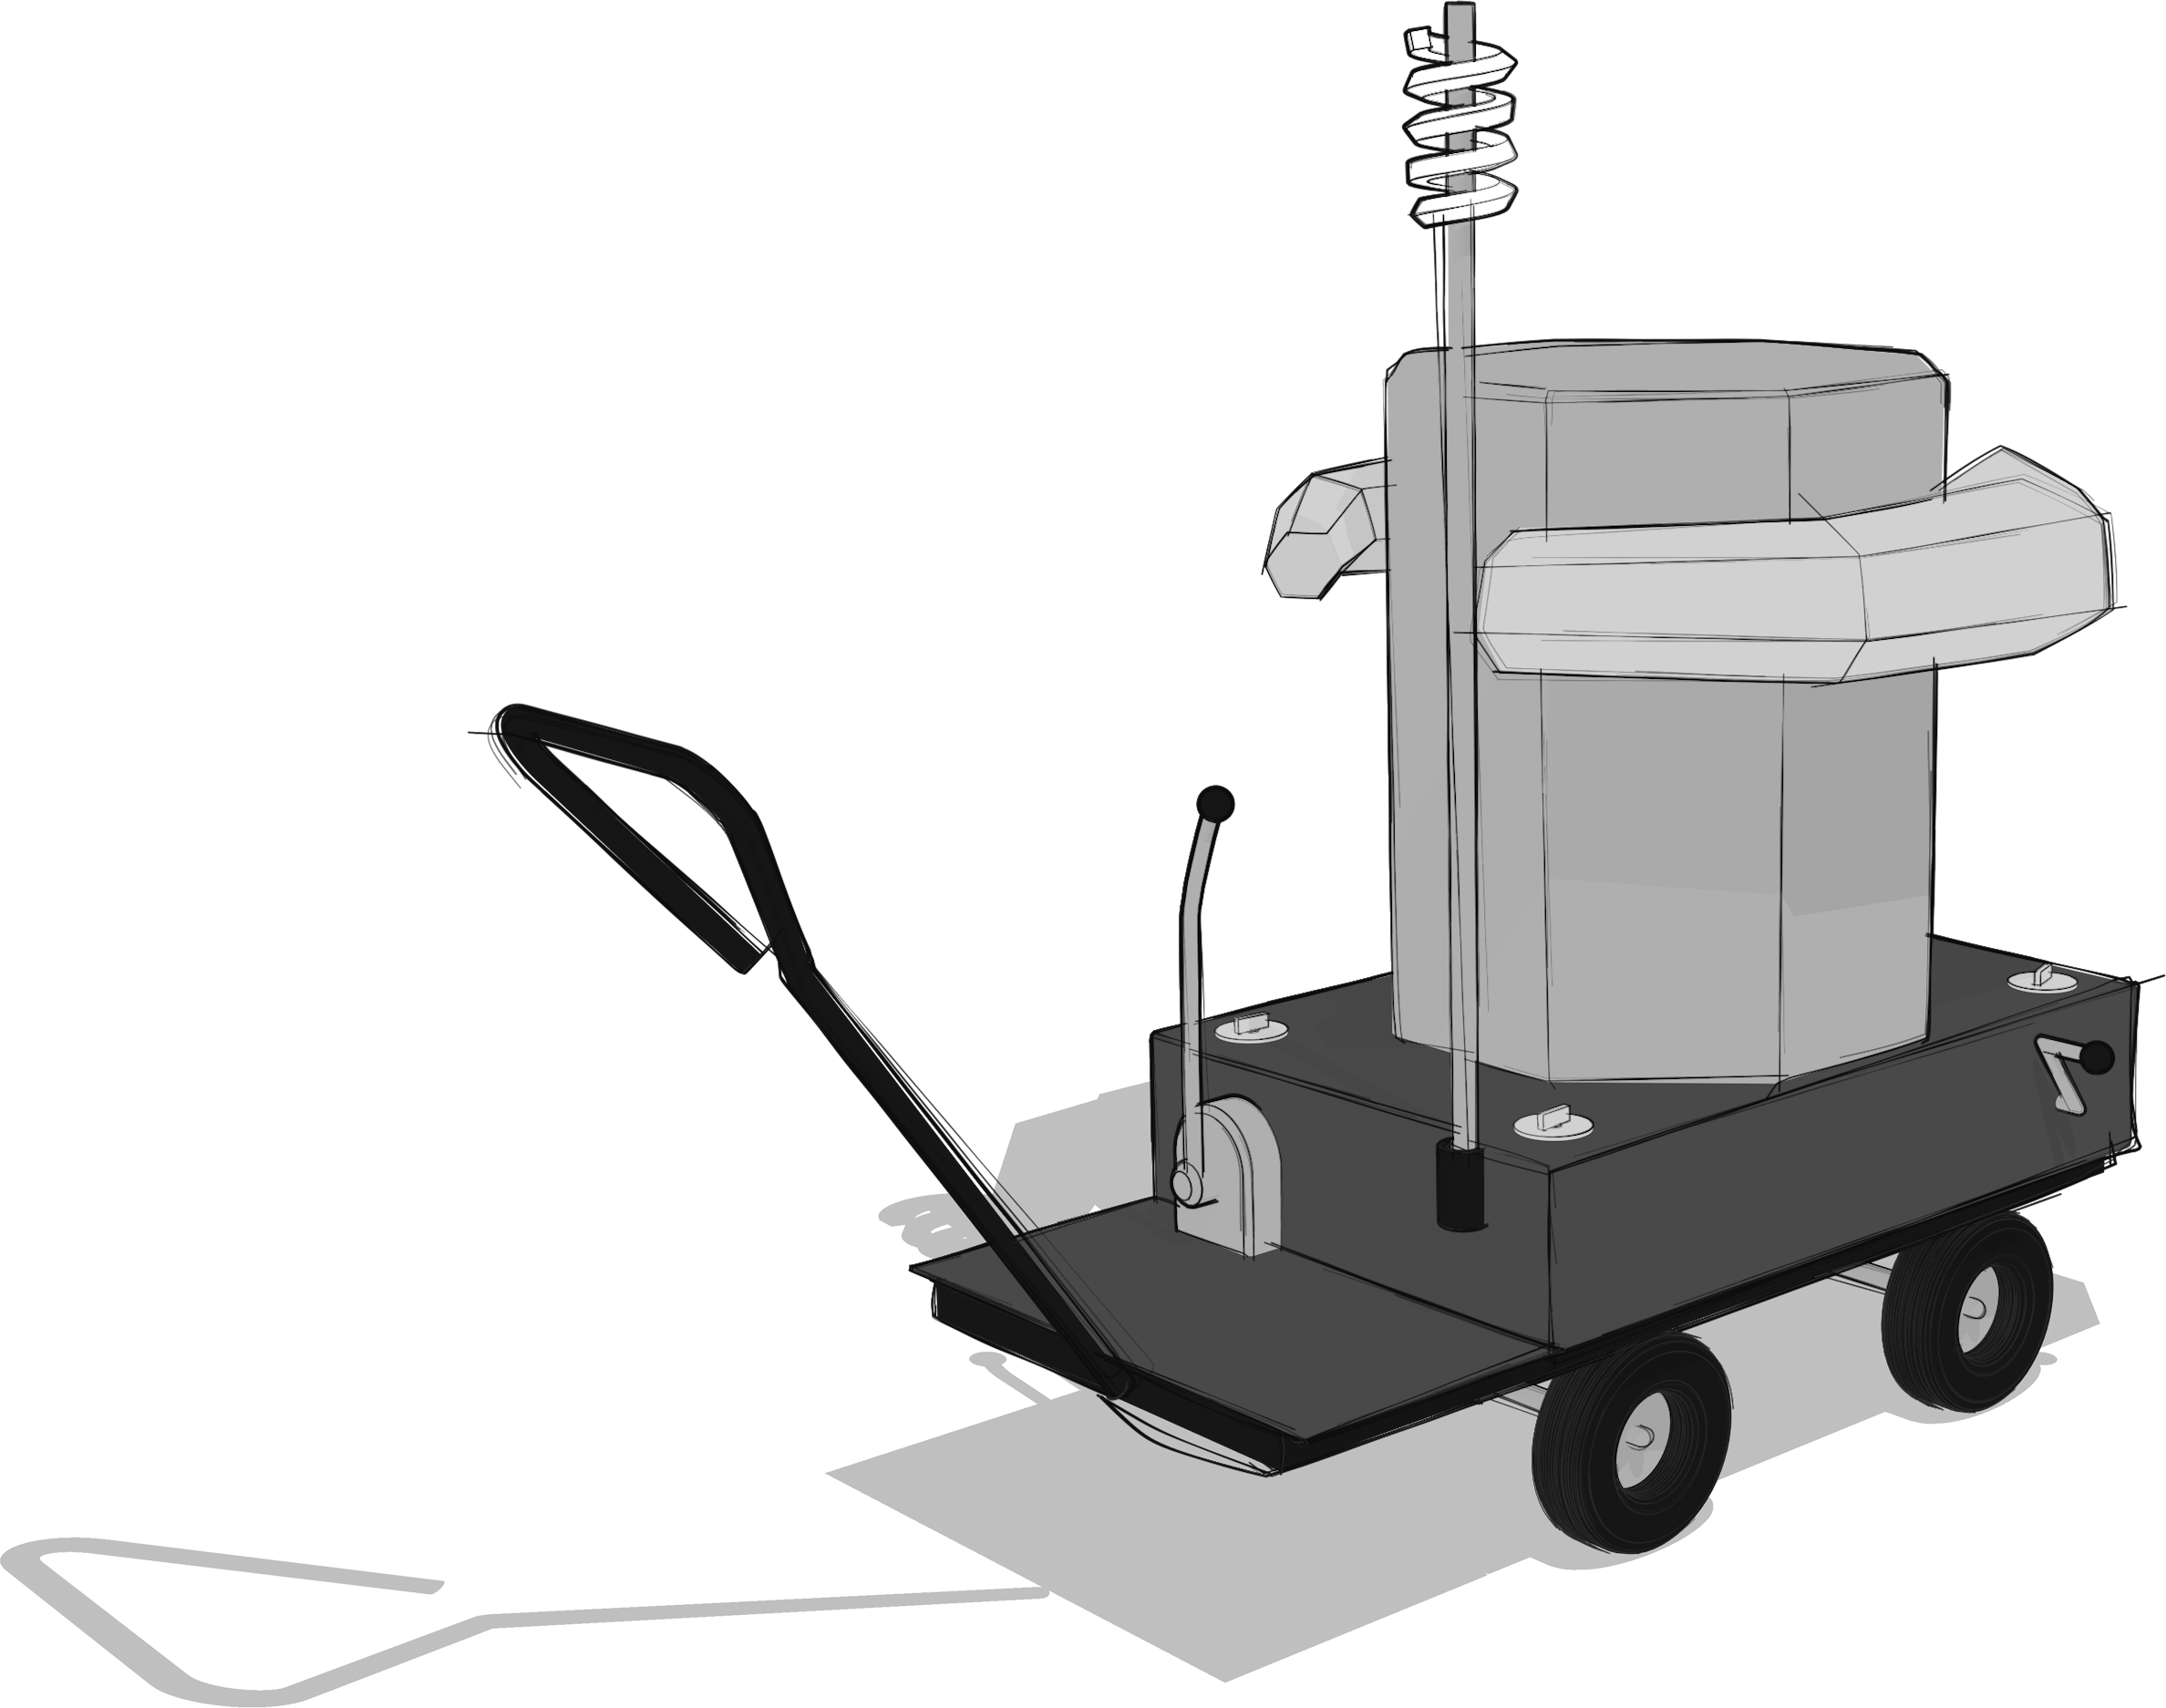 grey scale sketch of the Future Machine from the back angle with the lever, weather station and hand crank handle in view